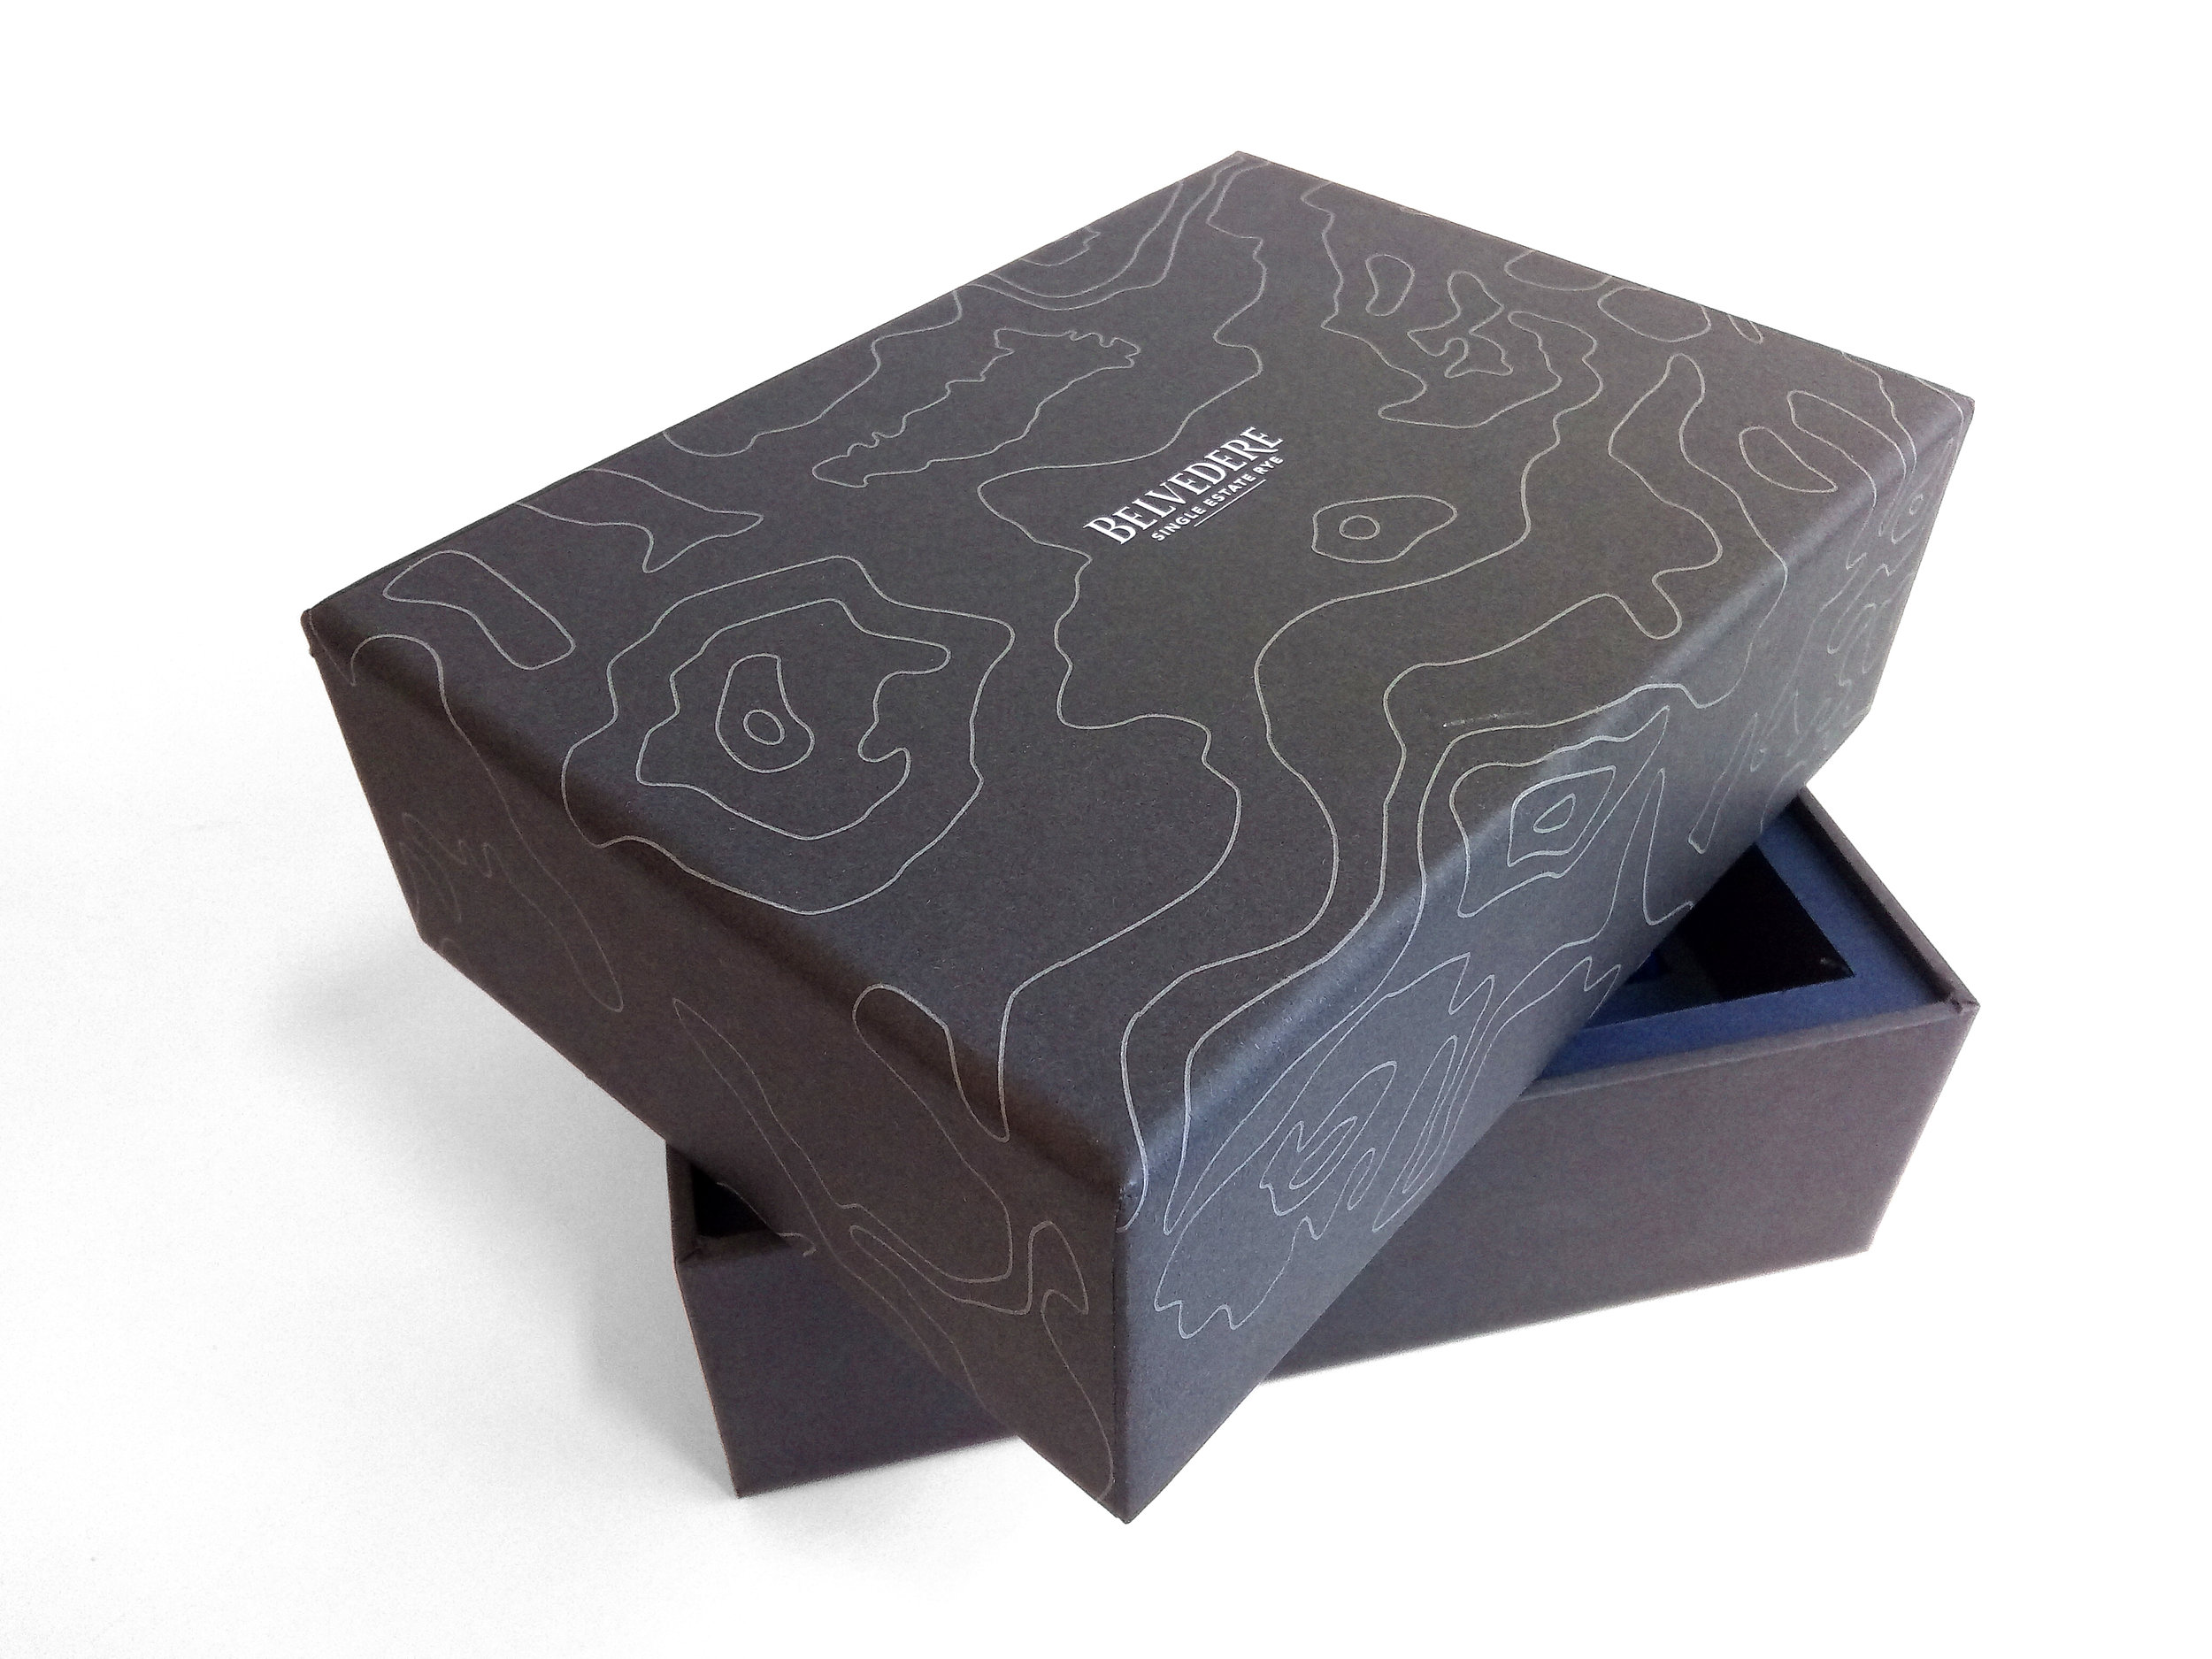 belvedere box and lid.jpg